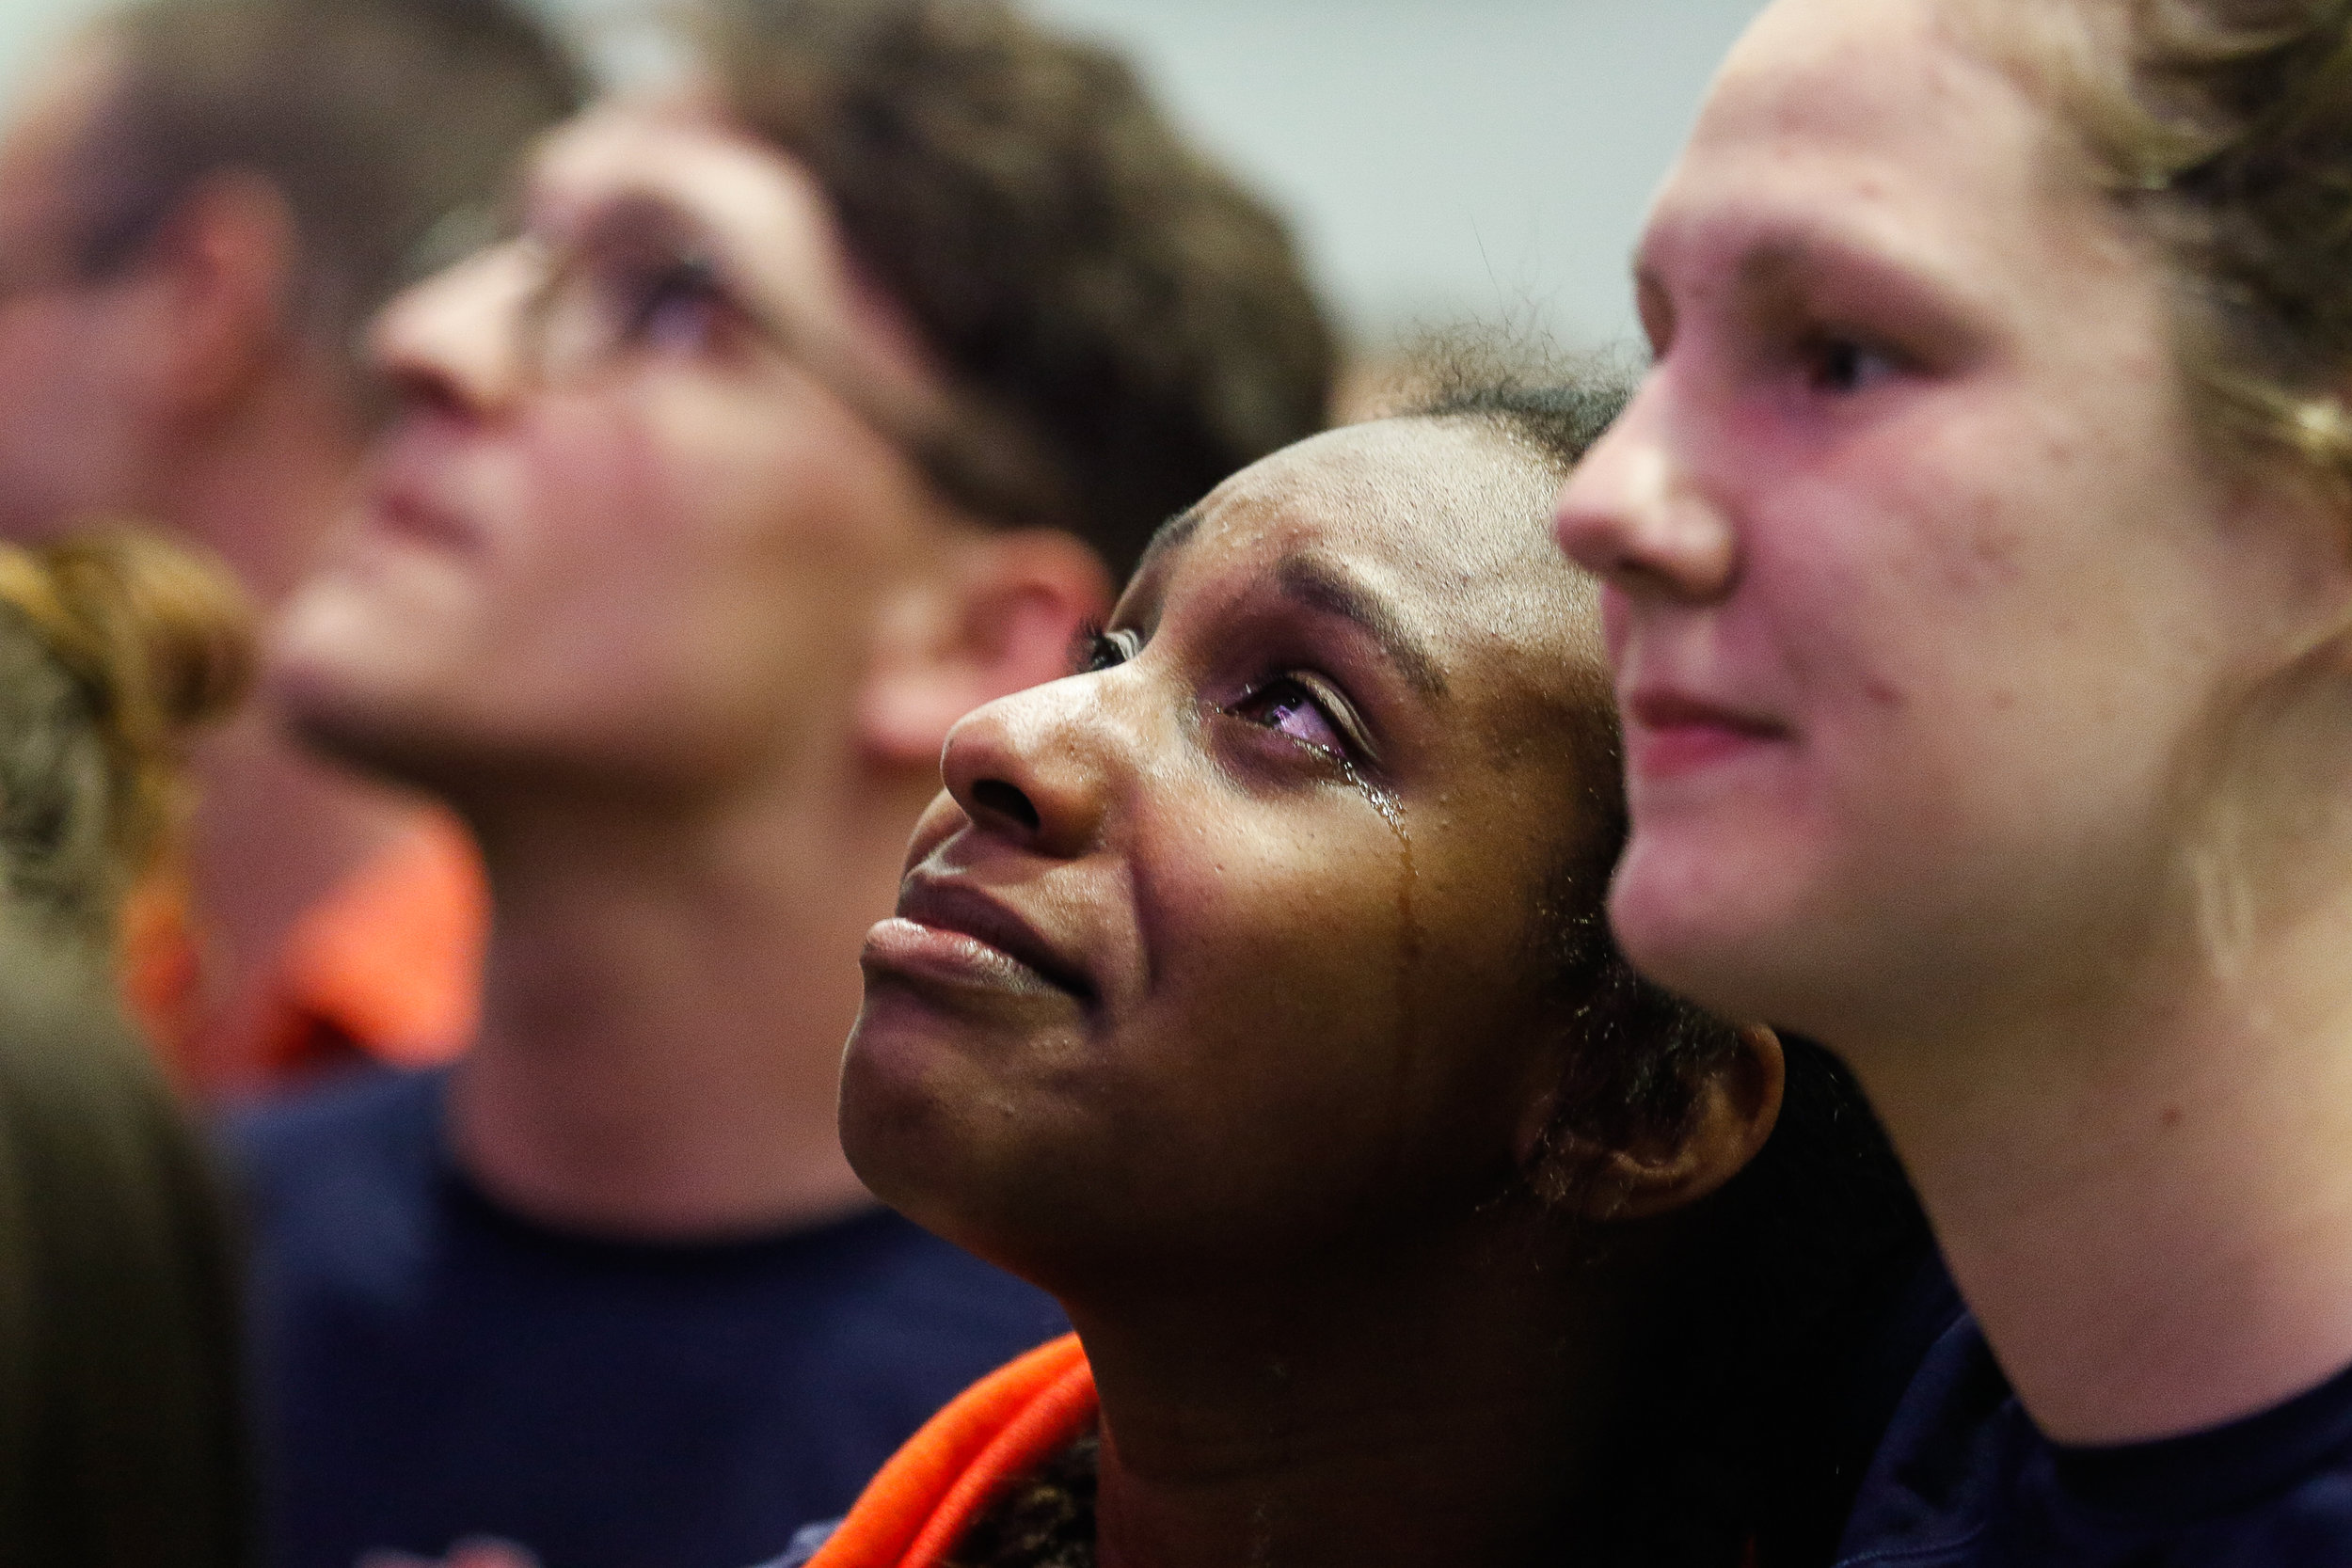 Auburn sophomore Jewels Harris sheds a tear as she watches her teammates receive gold for the Women's 400 Free Relay at the 2019 Swimming and Diving SEC Championship in Athens, Ga., on Saturday, Feb. 23, 2019. Finishing at 3:10.45, Auburn set both a school and SEC record.